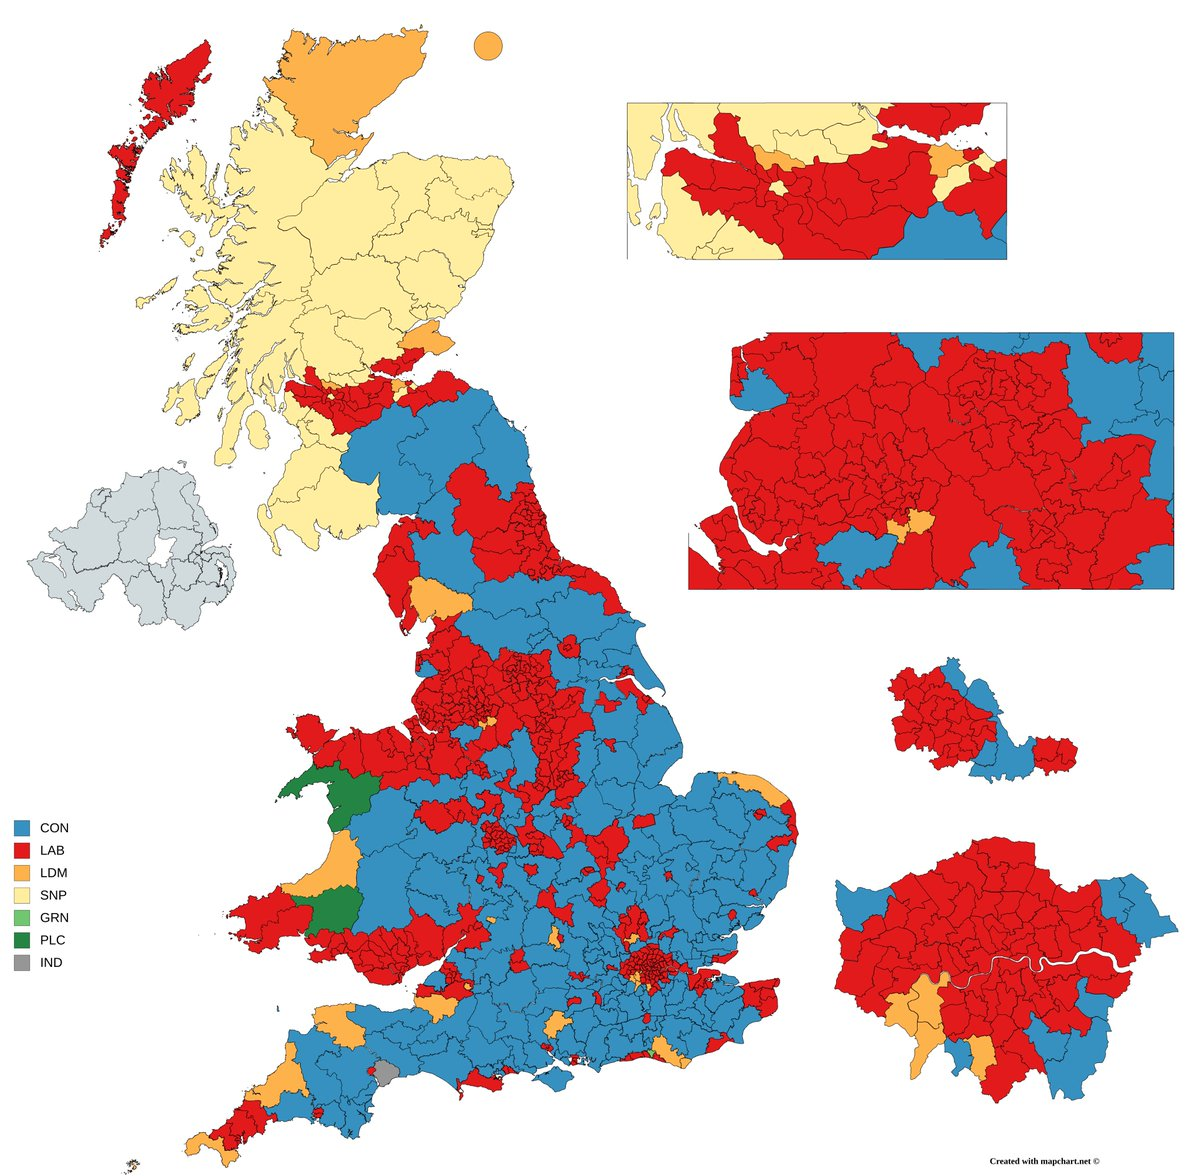 Uk Vote Map Election Maps UK on Twitter: